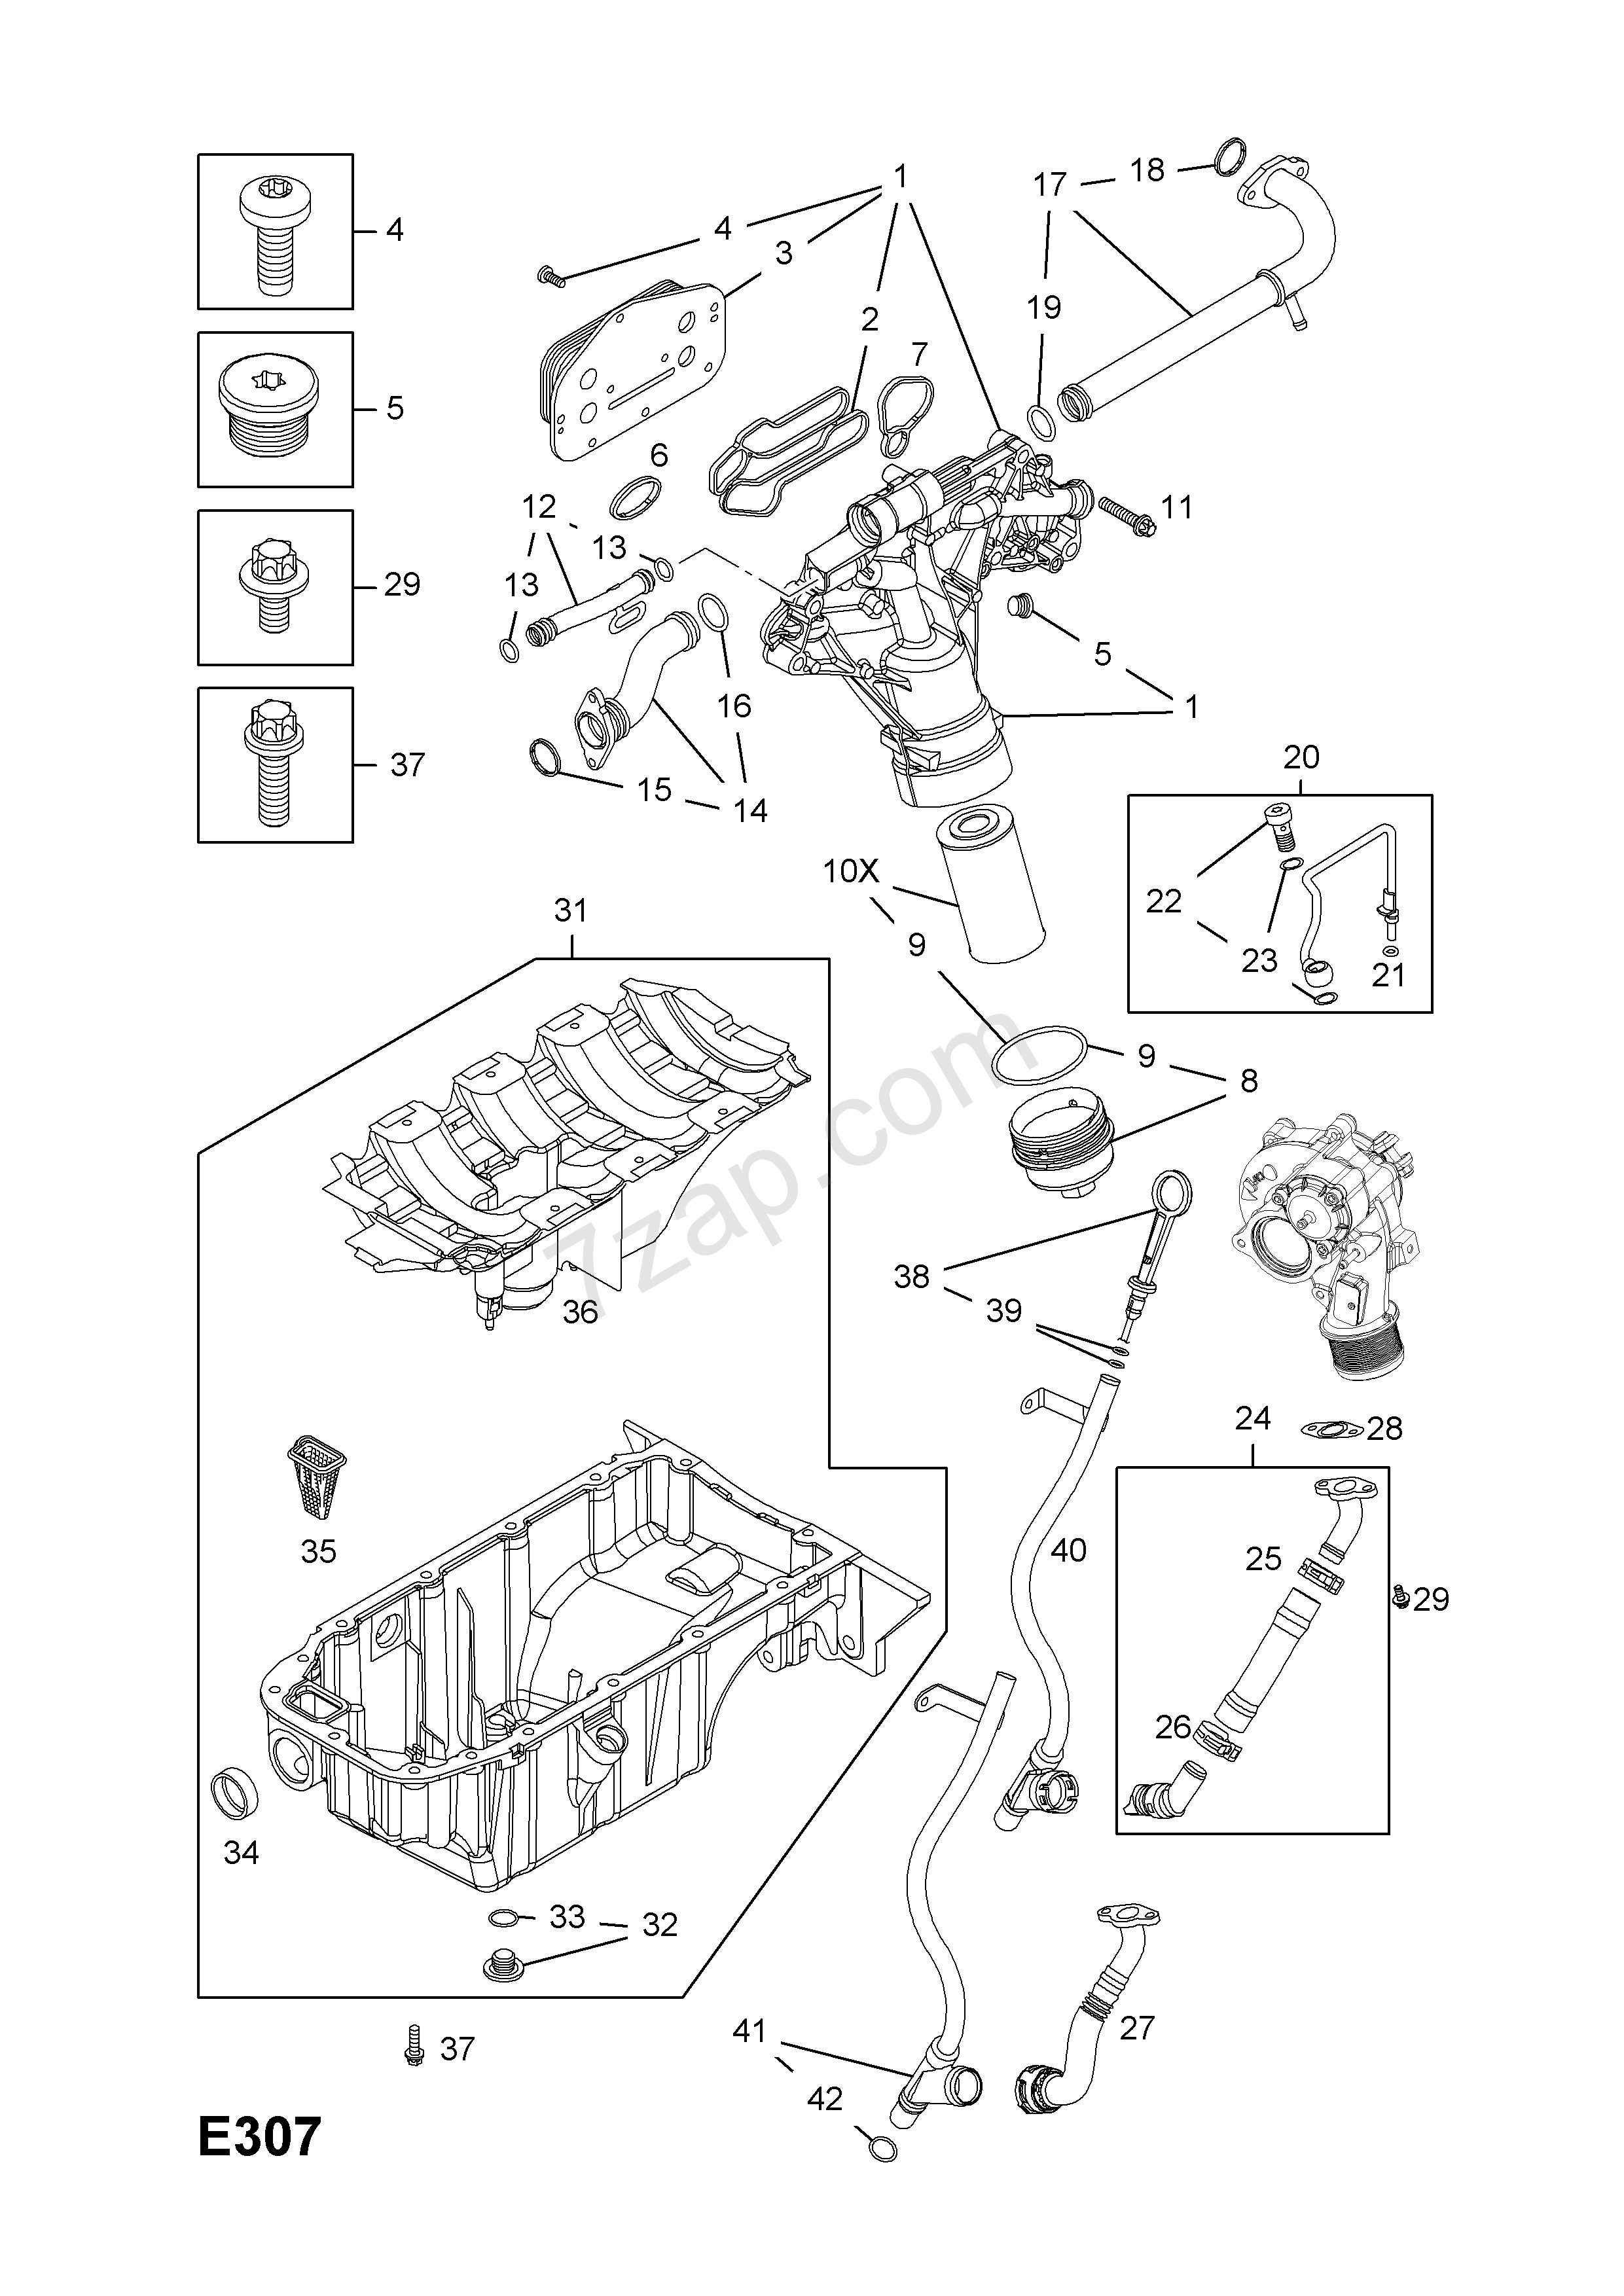 Vauxhall Corsa Engine Diagram My Wiring Diagrams Oil Level Sensor Please Refer To Group P And Cooling